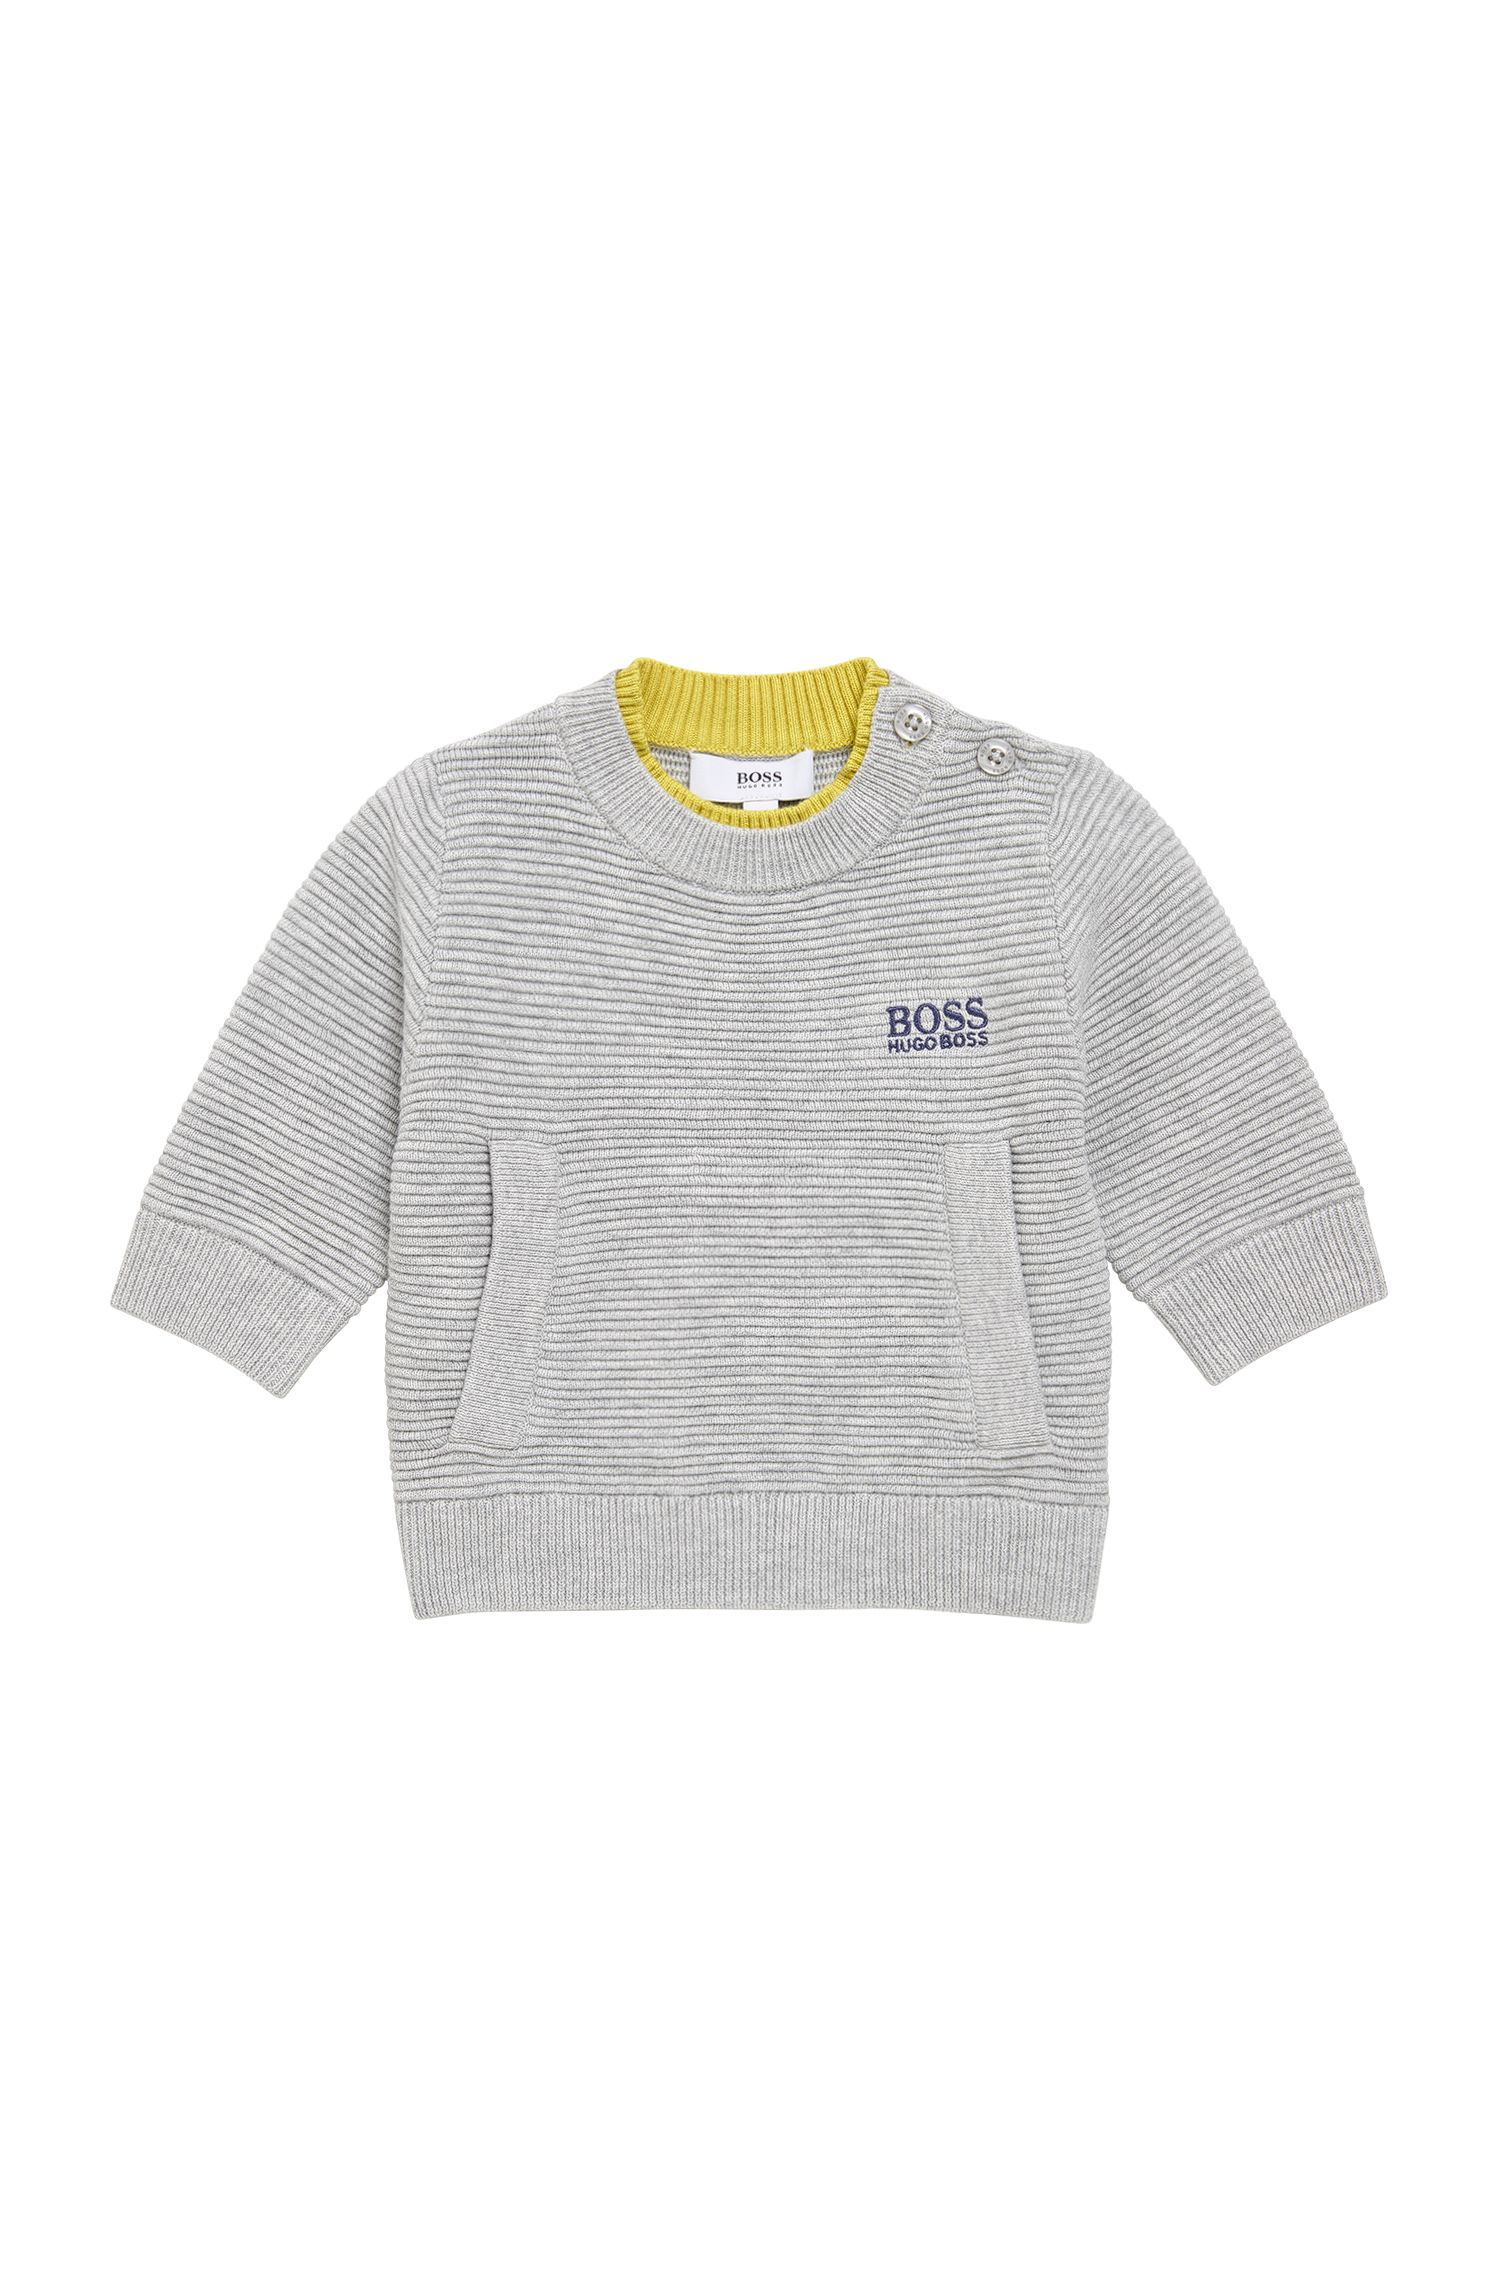 'J05515' | Toddler Stretch Cotton Kangaroo Pocket Sweater